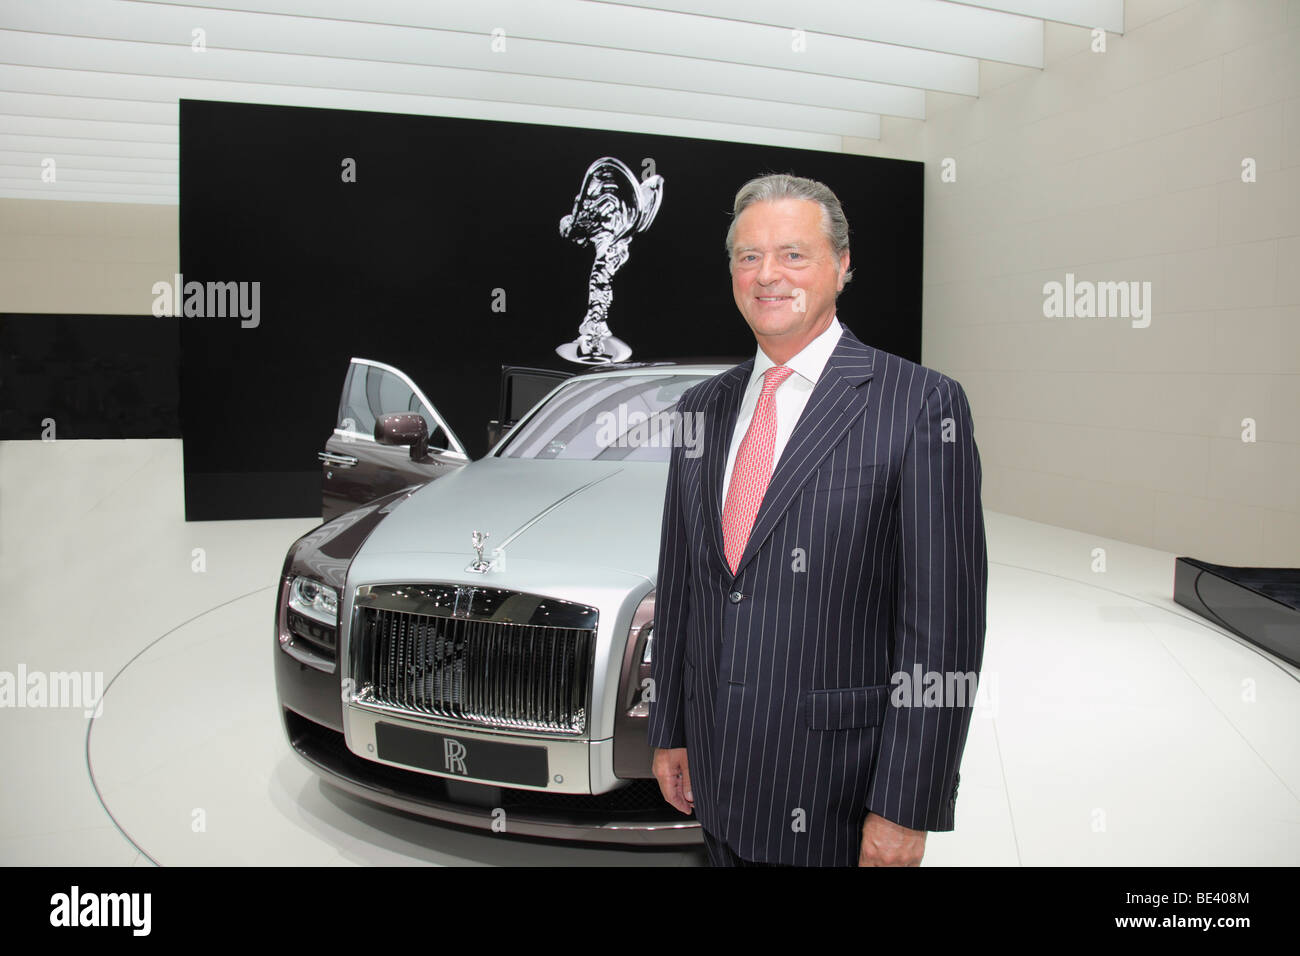 63th International Motor Show ( IAA ): Tom Purves, CEO of Rolls-Royce, presenting the new car model - Ghost - - Stock Image